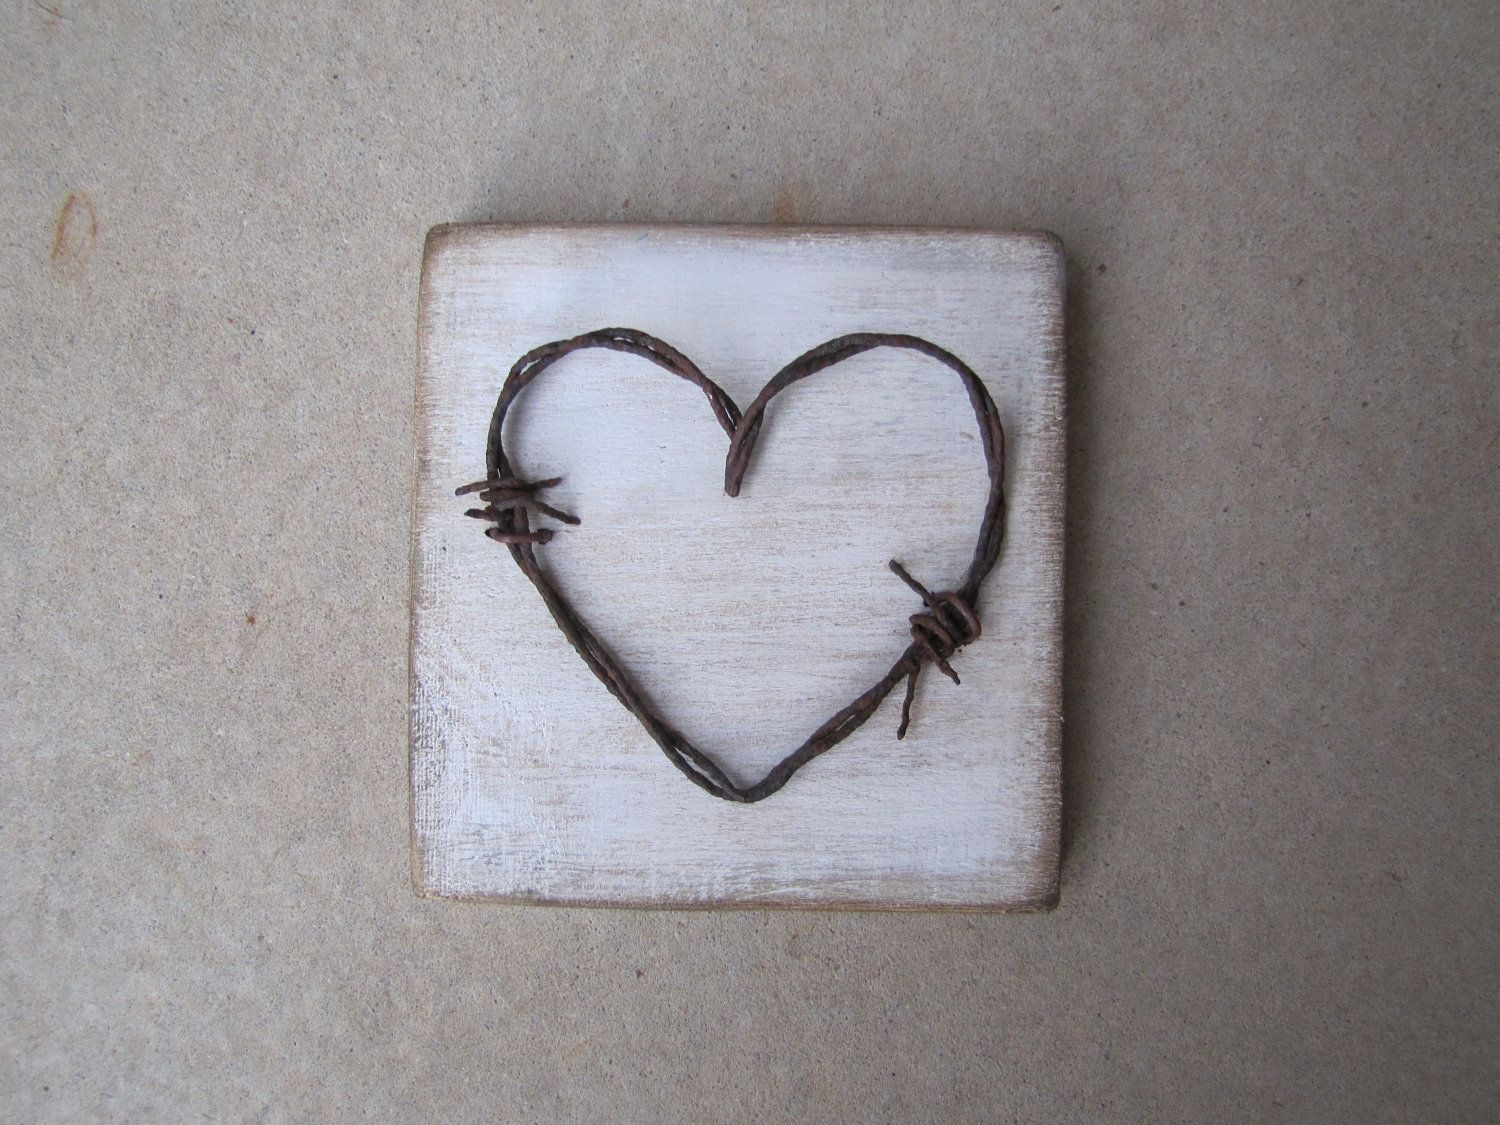 Wire Heart Sign Data Metering Circuit Databasecircuit Schematics Diagrams And Projects Distressed Rustic Wooden Barbed Home Decor Rh Pinterest Co Uk Garland Shabby